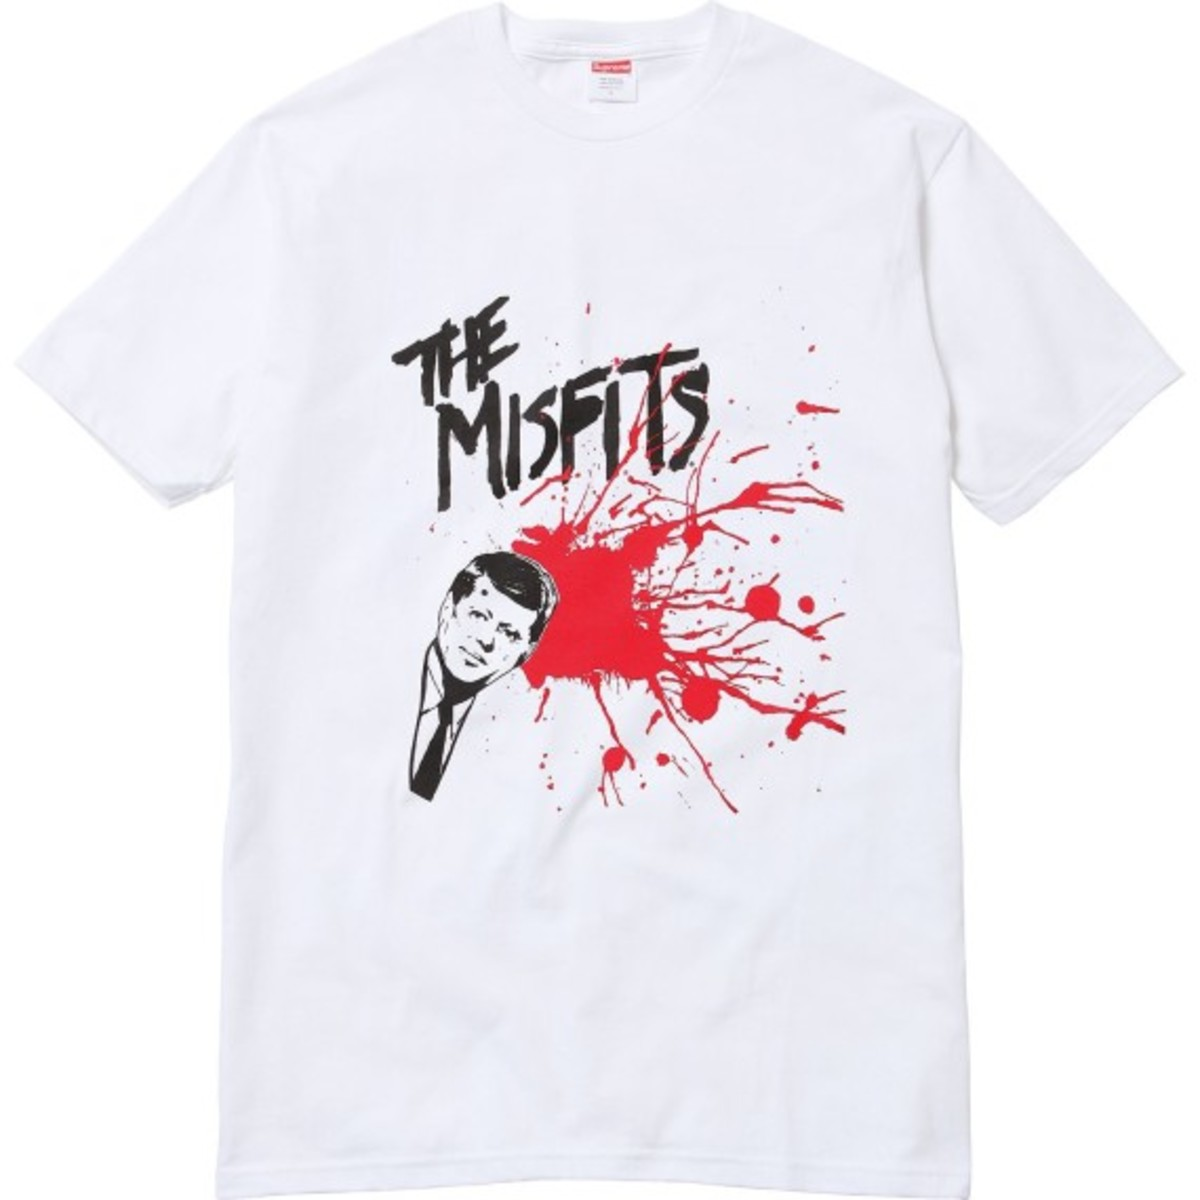 the-misfits-x-supreme-capsule-collection-available-16